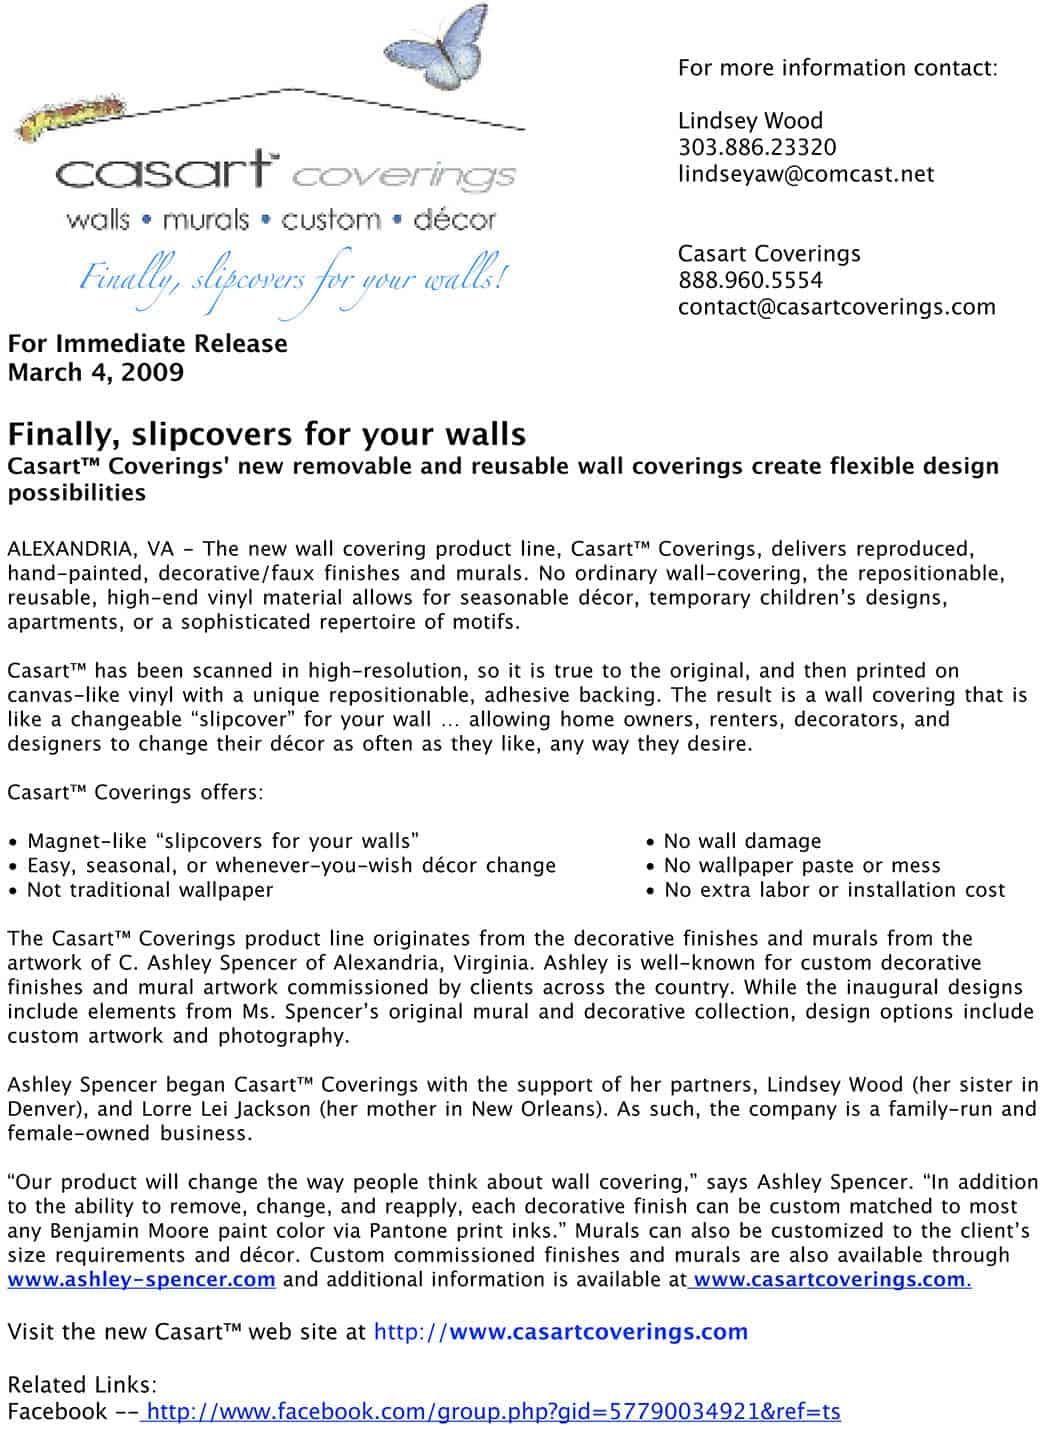 Casart Coverings Initial Press Release March 2009